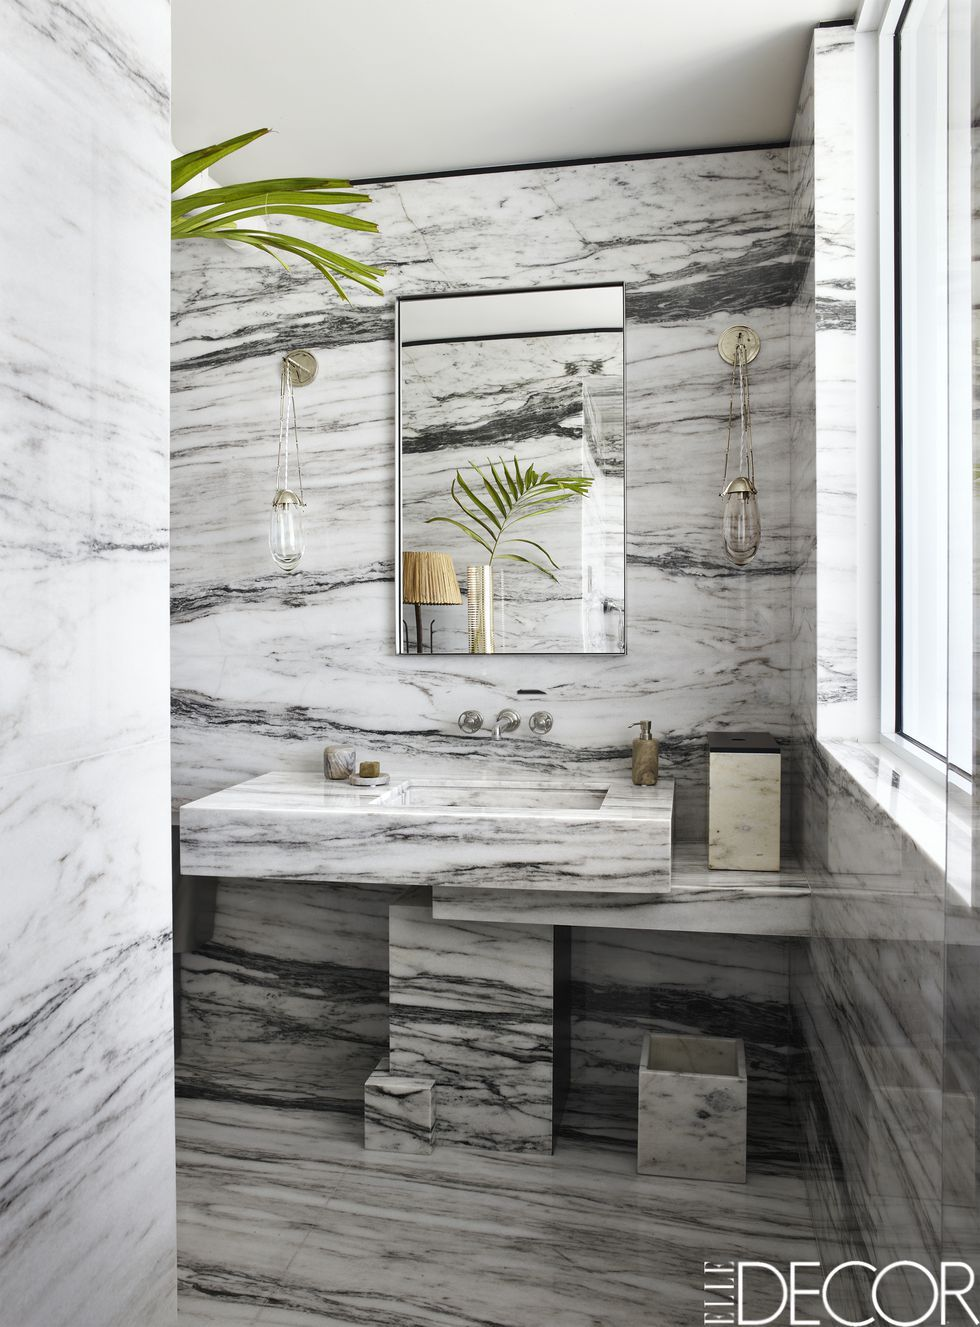 Small Bathrooms Design Ideas 2020 - How to Decorate Small ... on Nice Bathroom Designs For Small Spaces  id=29460